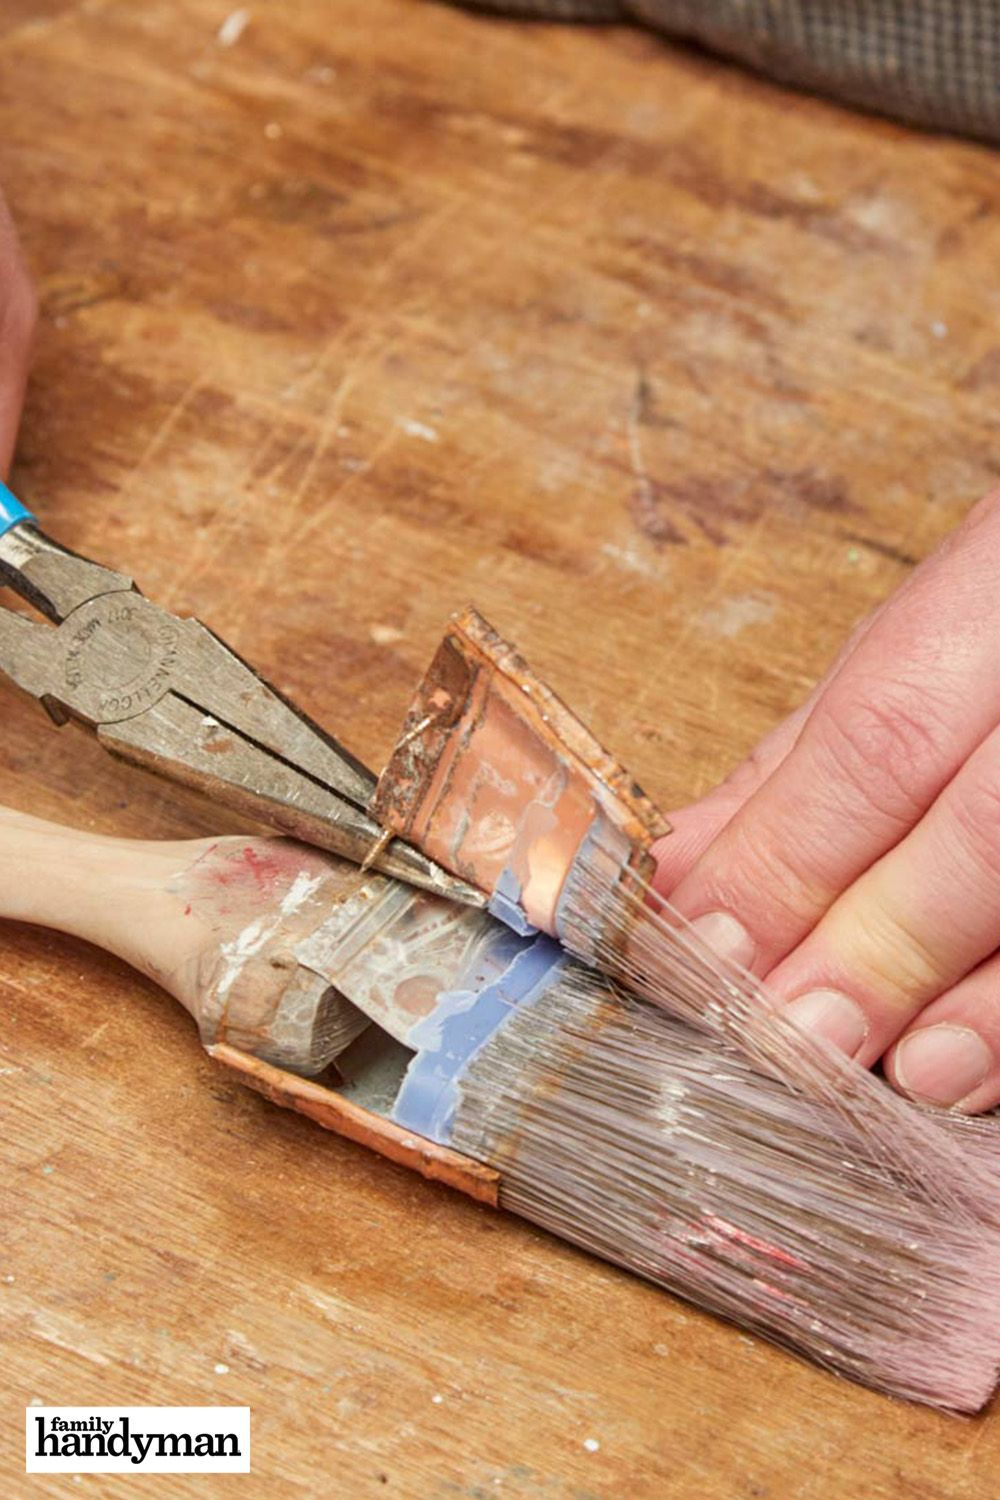 19 Classic Handy Tool Tips and Tricks